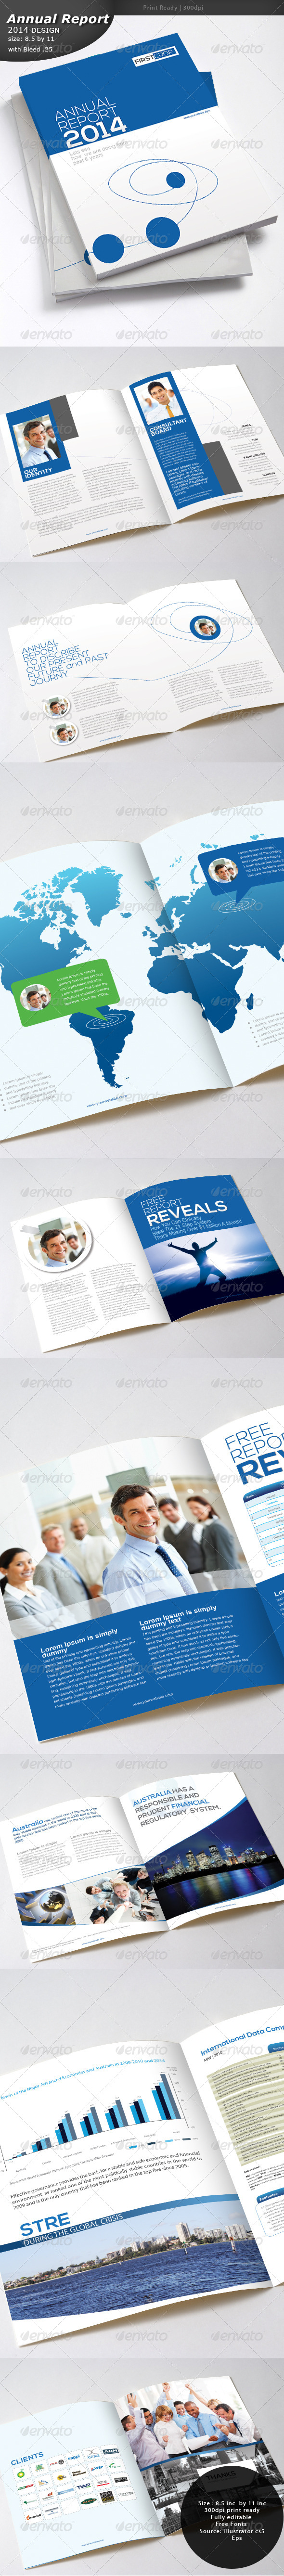 GraphicRiver Annual Report 2014 6506566